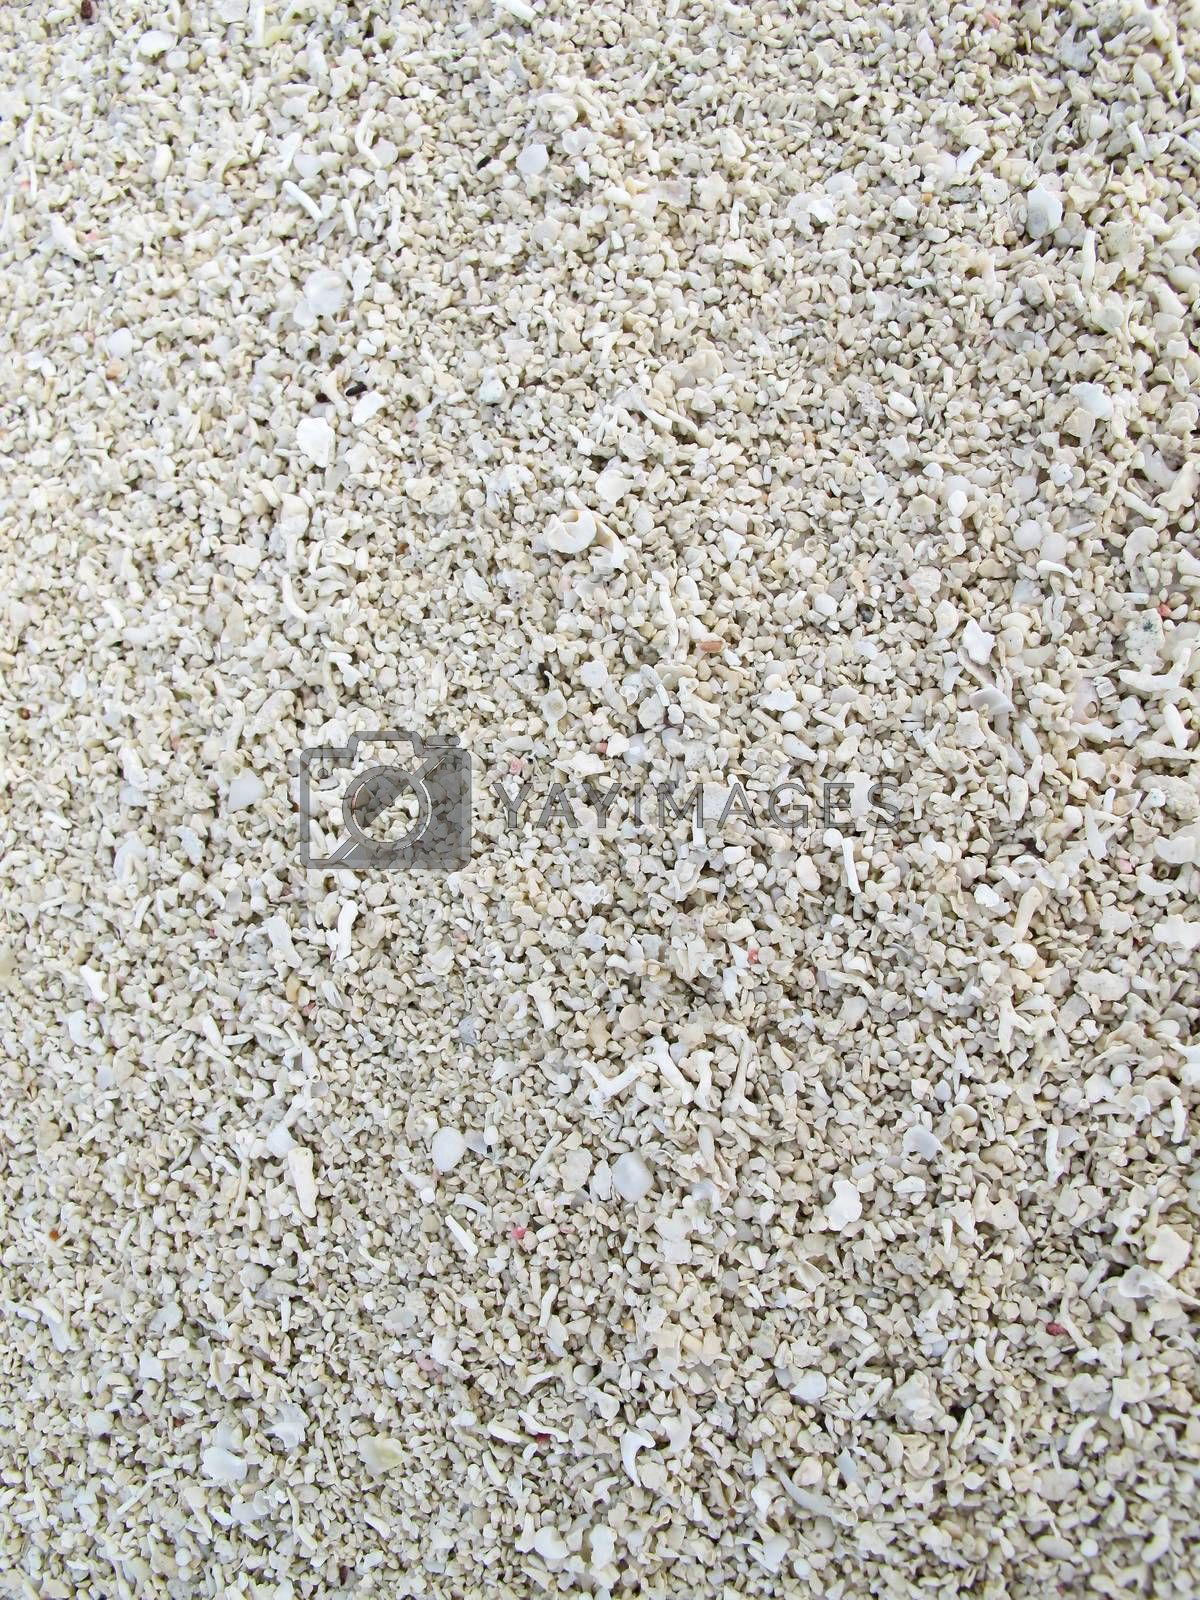 Close up of beach white sand  by get4net